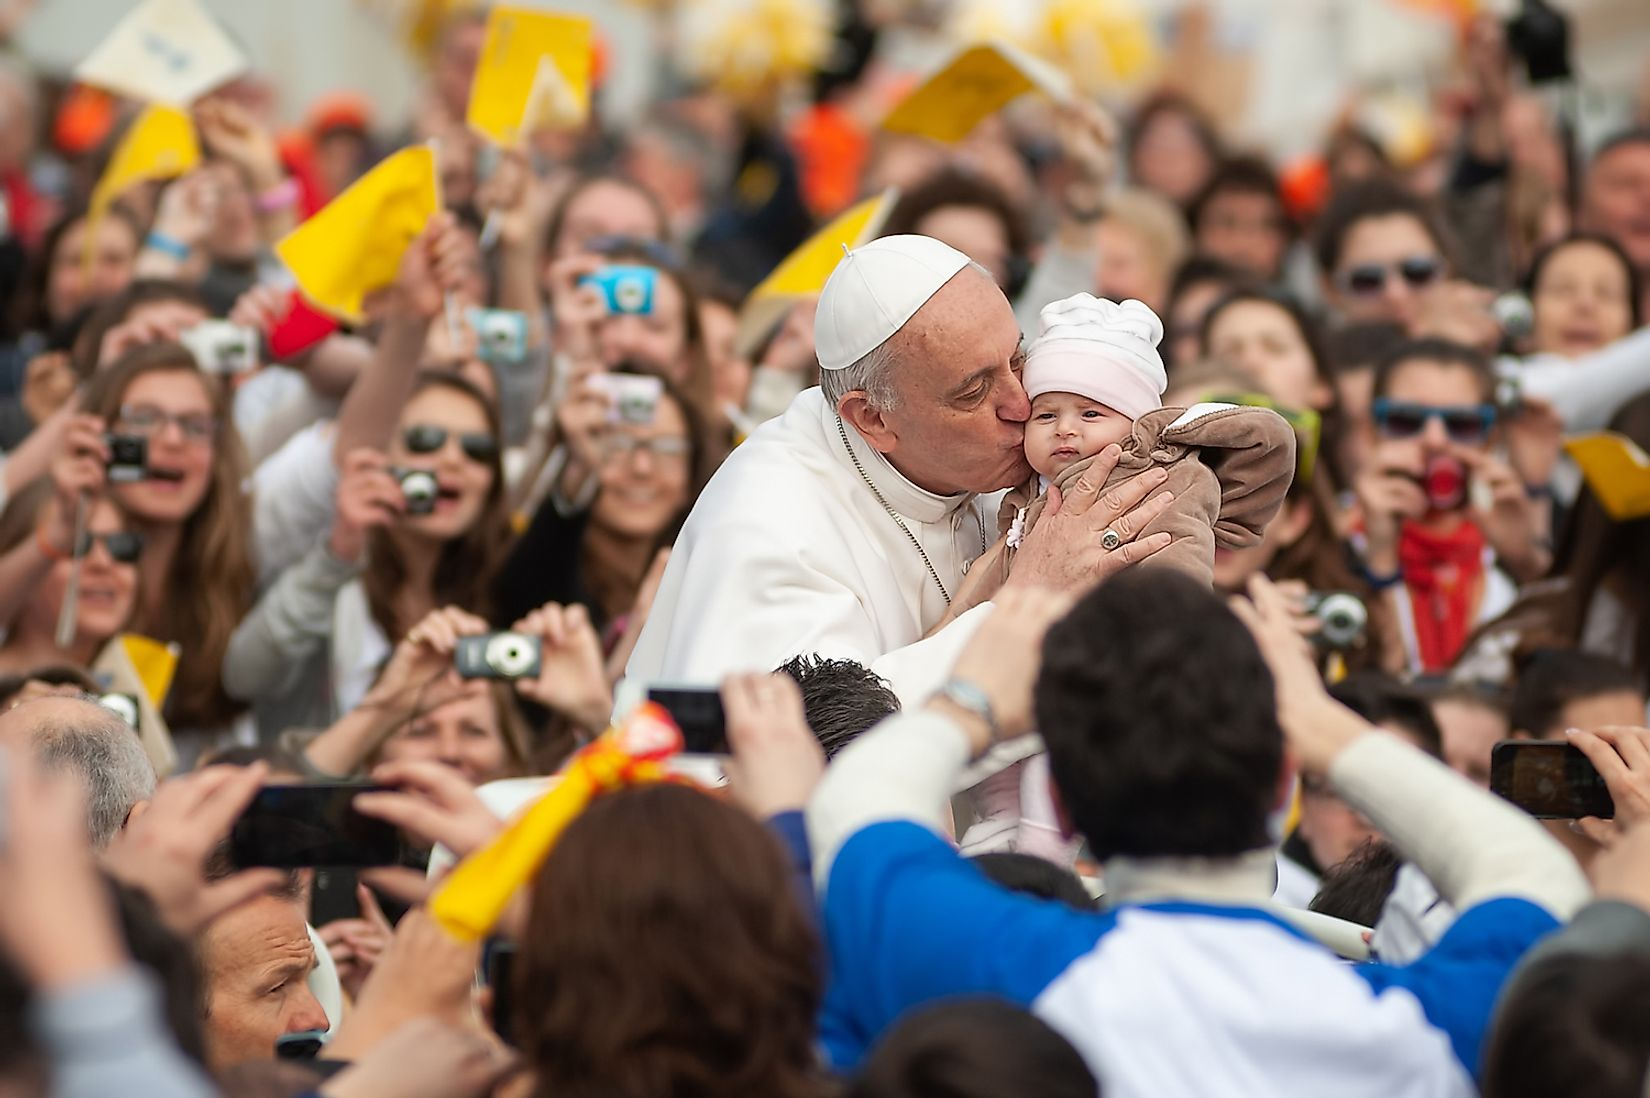 His Holiness Pope Francis I kisses a child during a prayer in front of St Peter' Basilica in Vatican City. Image credit: Boris Stroujko/Shutterstock.com